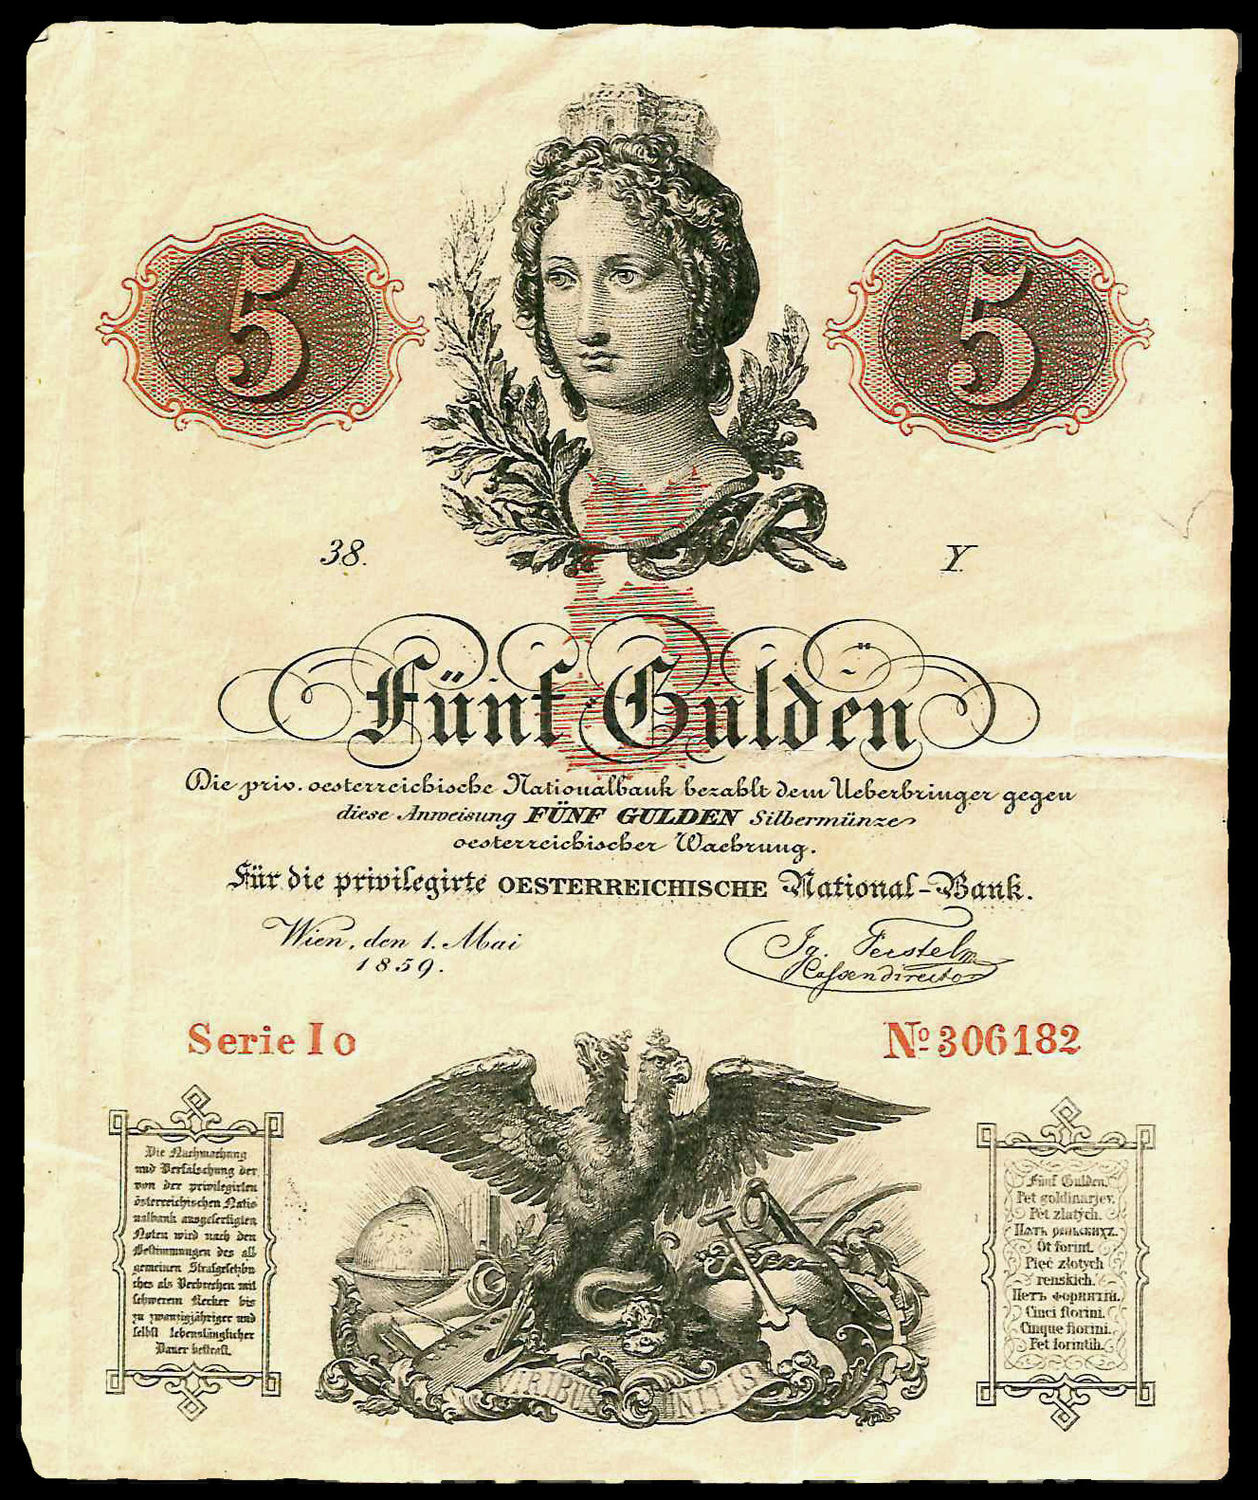 Numisbids Dorotheum Gmbh Co Kg May 2018 Coin Auction Lot 2059